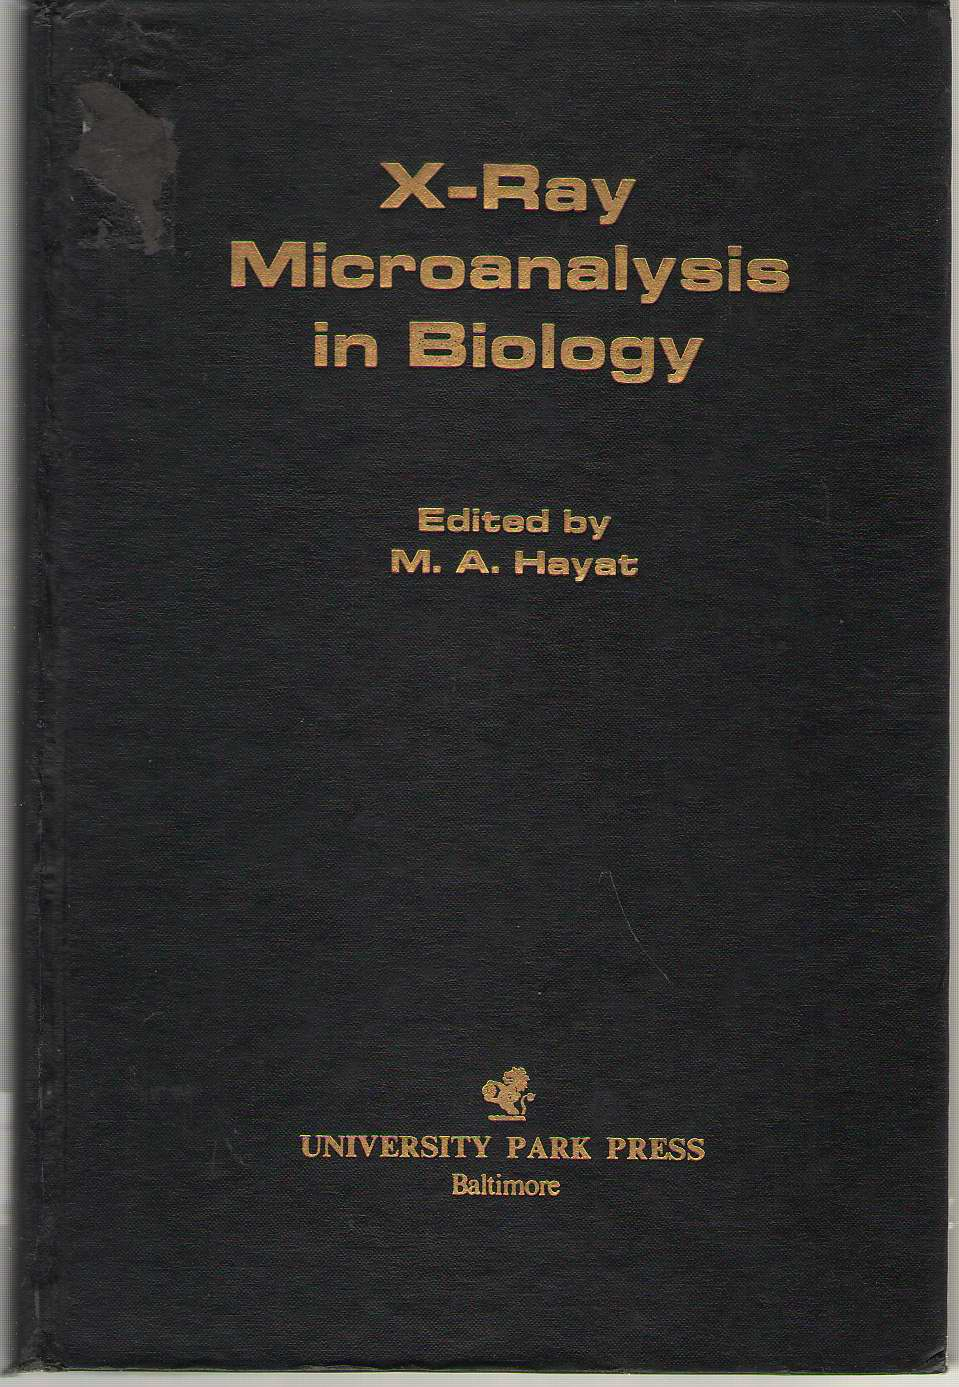 X-ray Microanalysis In Biology, Hayat, M. A. (editor)